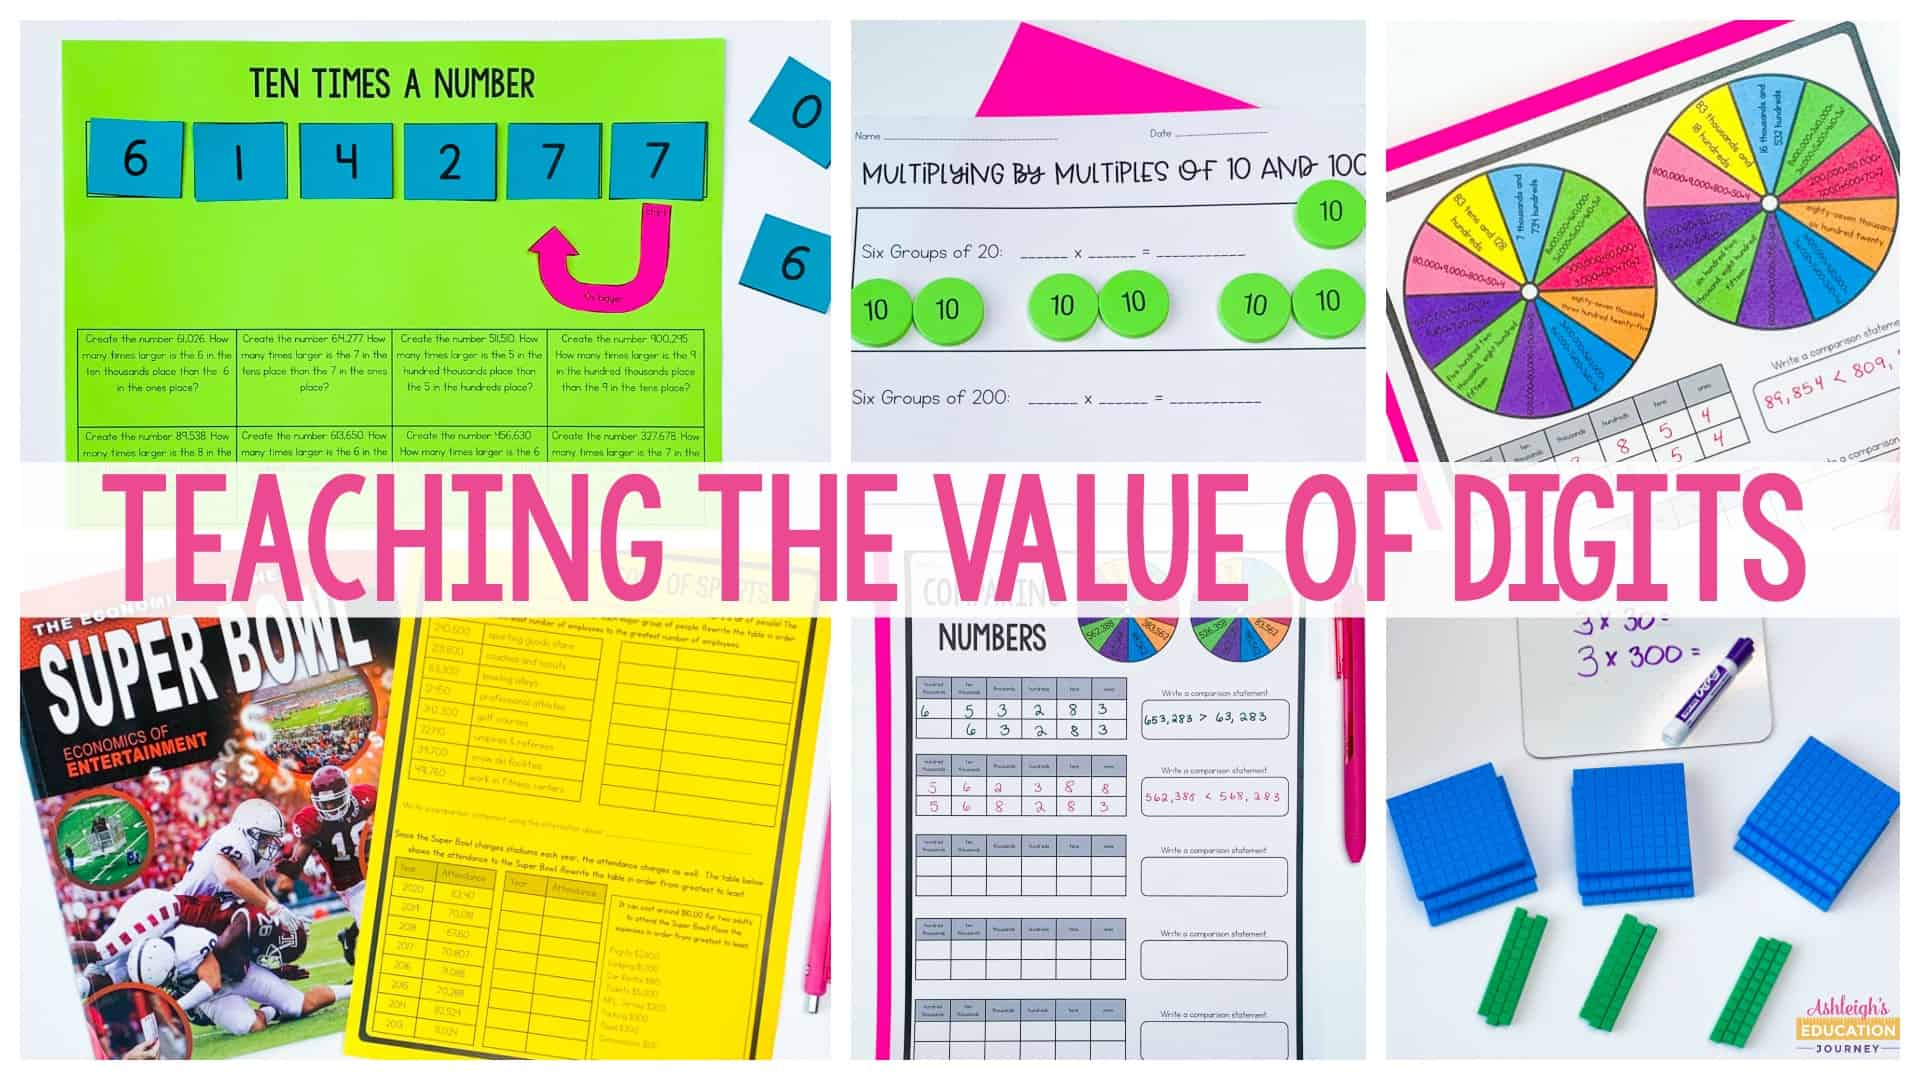 hight resolution of Understanding the Value of Digits in Place Value - Ashleigh's Education  Journey